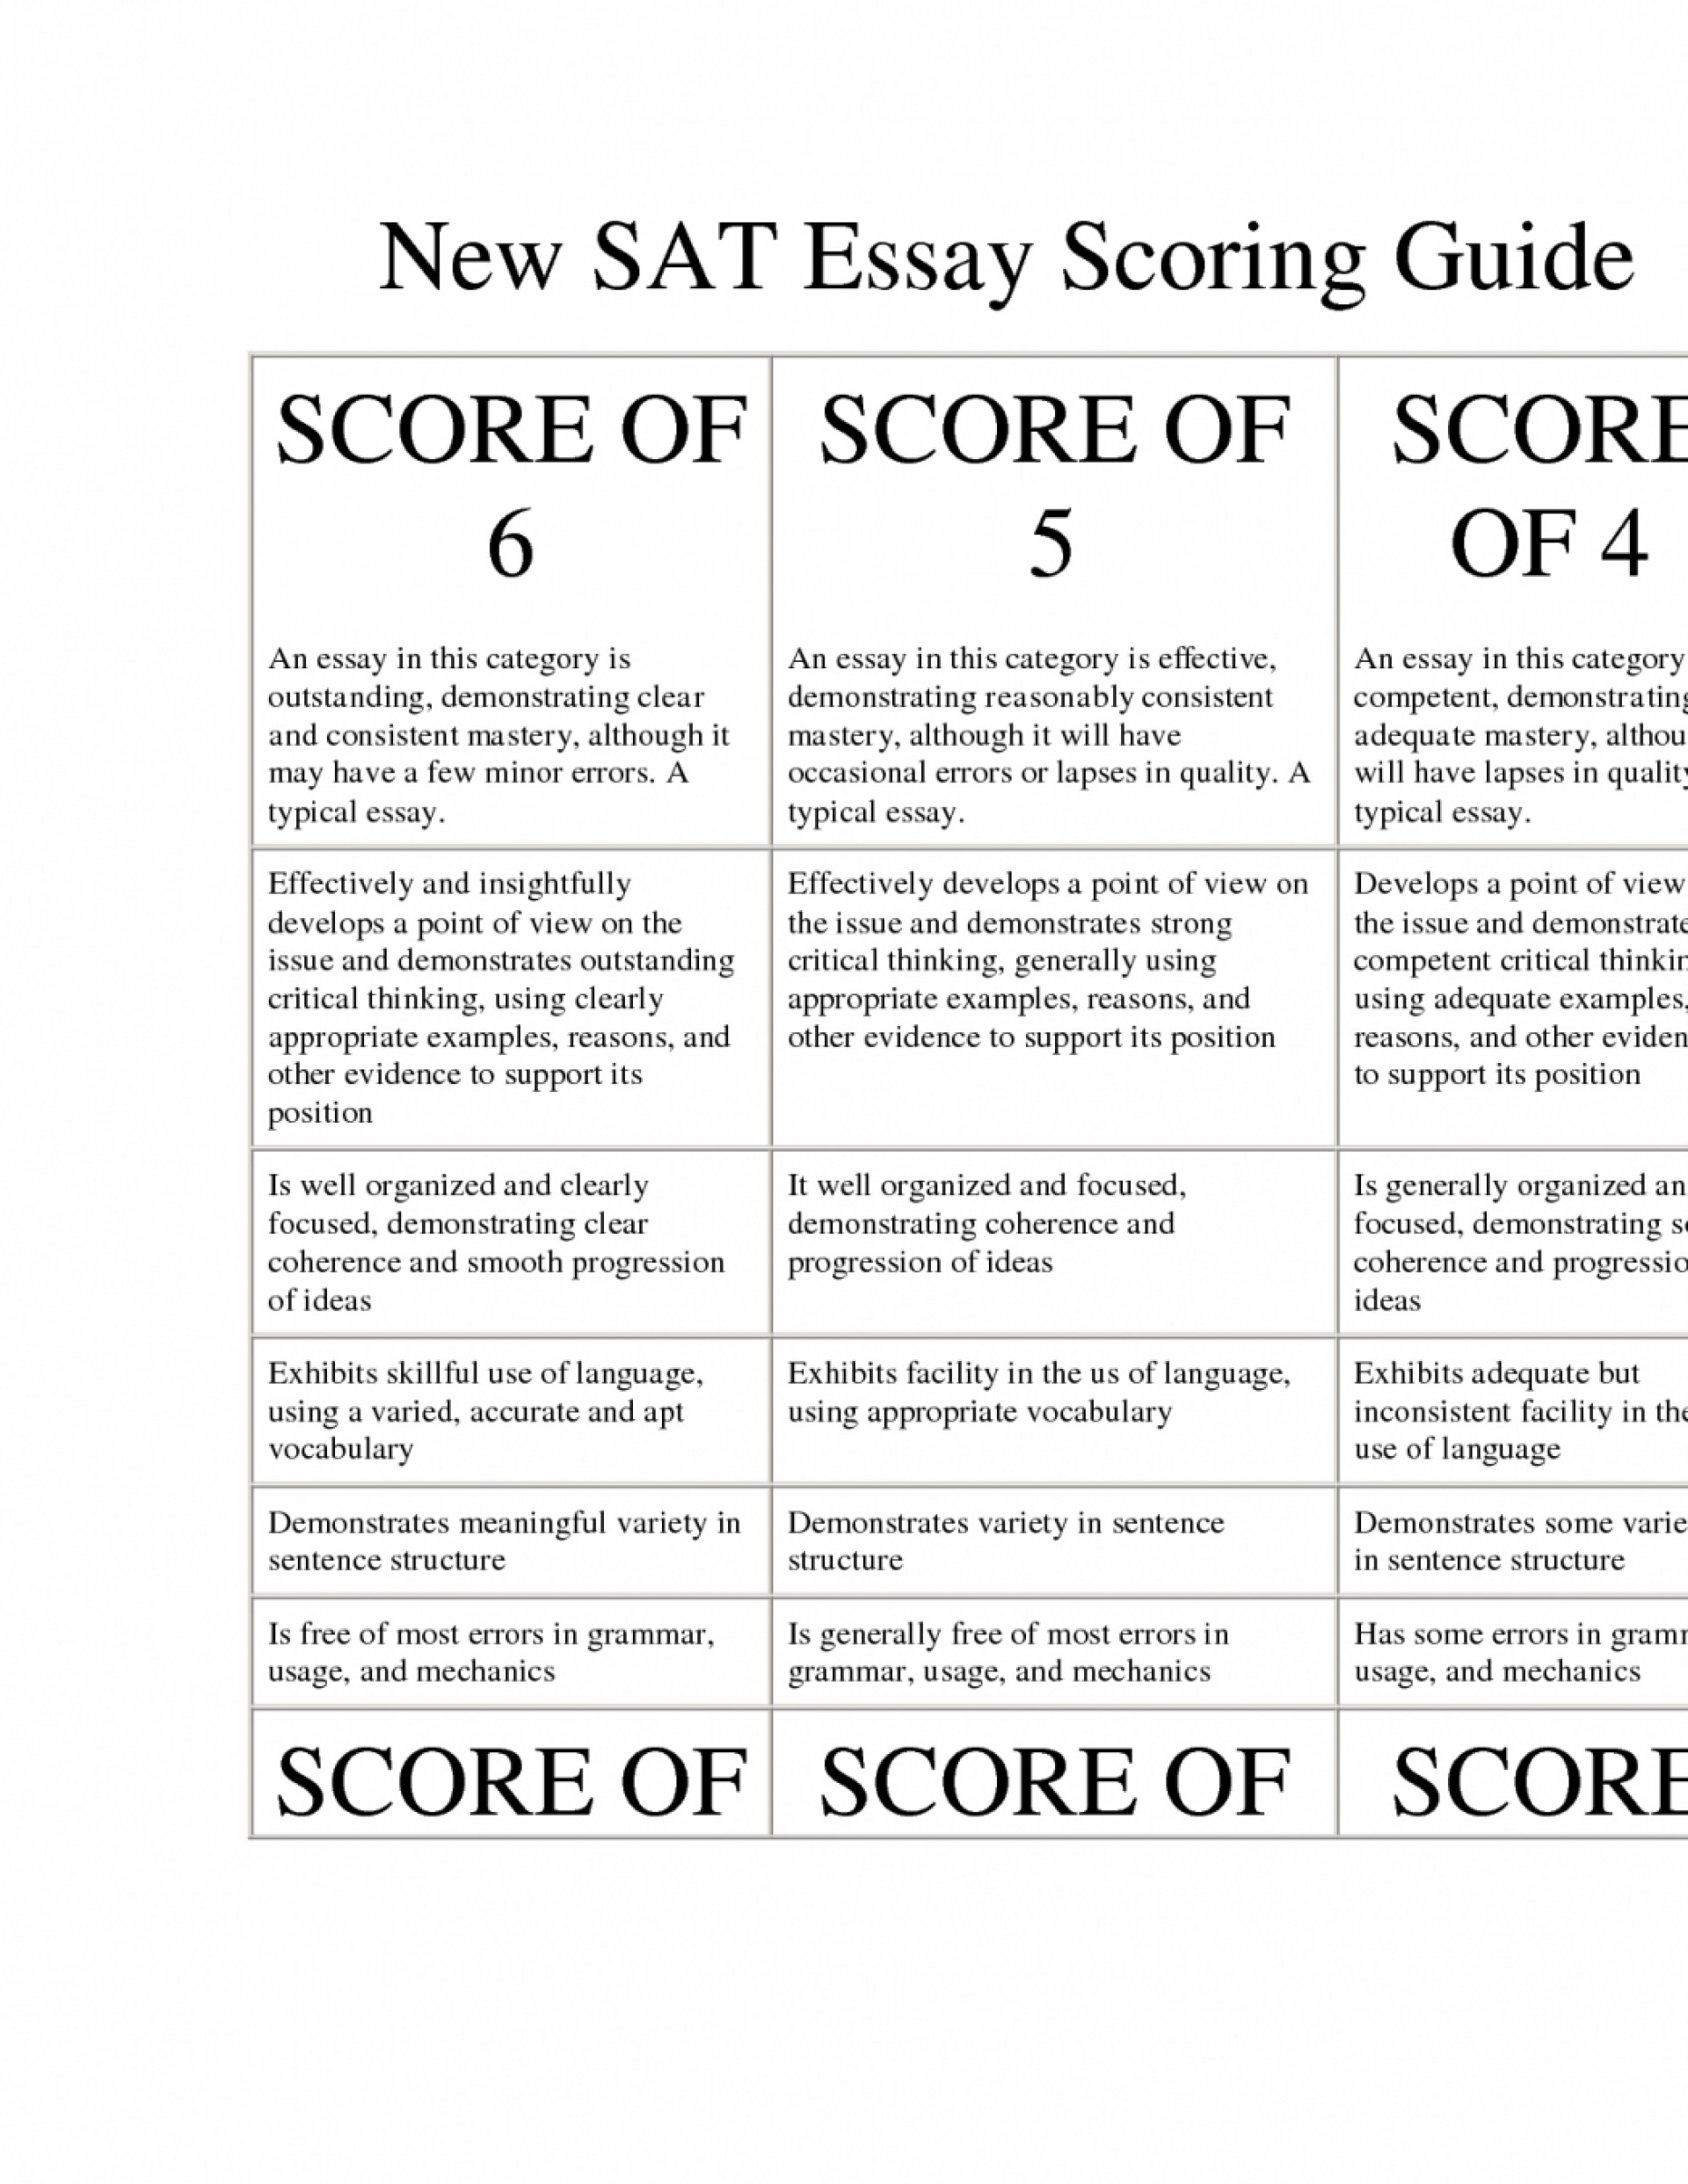 014 Essay Score Sat Goal Blockety Co How To Write Perfect Quotes Quotesgram Is There An On The L Really Good Introduction Conclusion Intro 1048x1356 Example Breathtaking Format New Template Pdf 2 Paper Old 1920